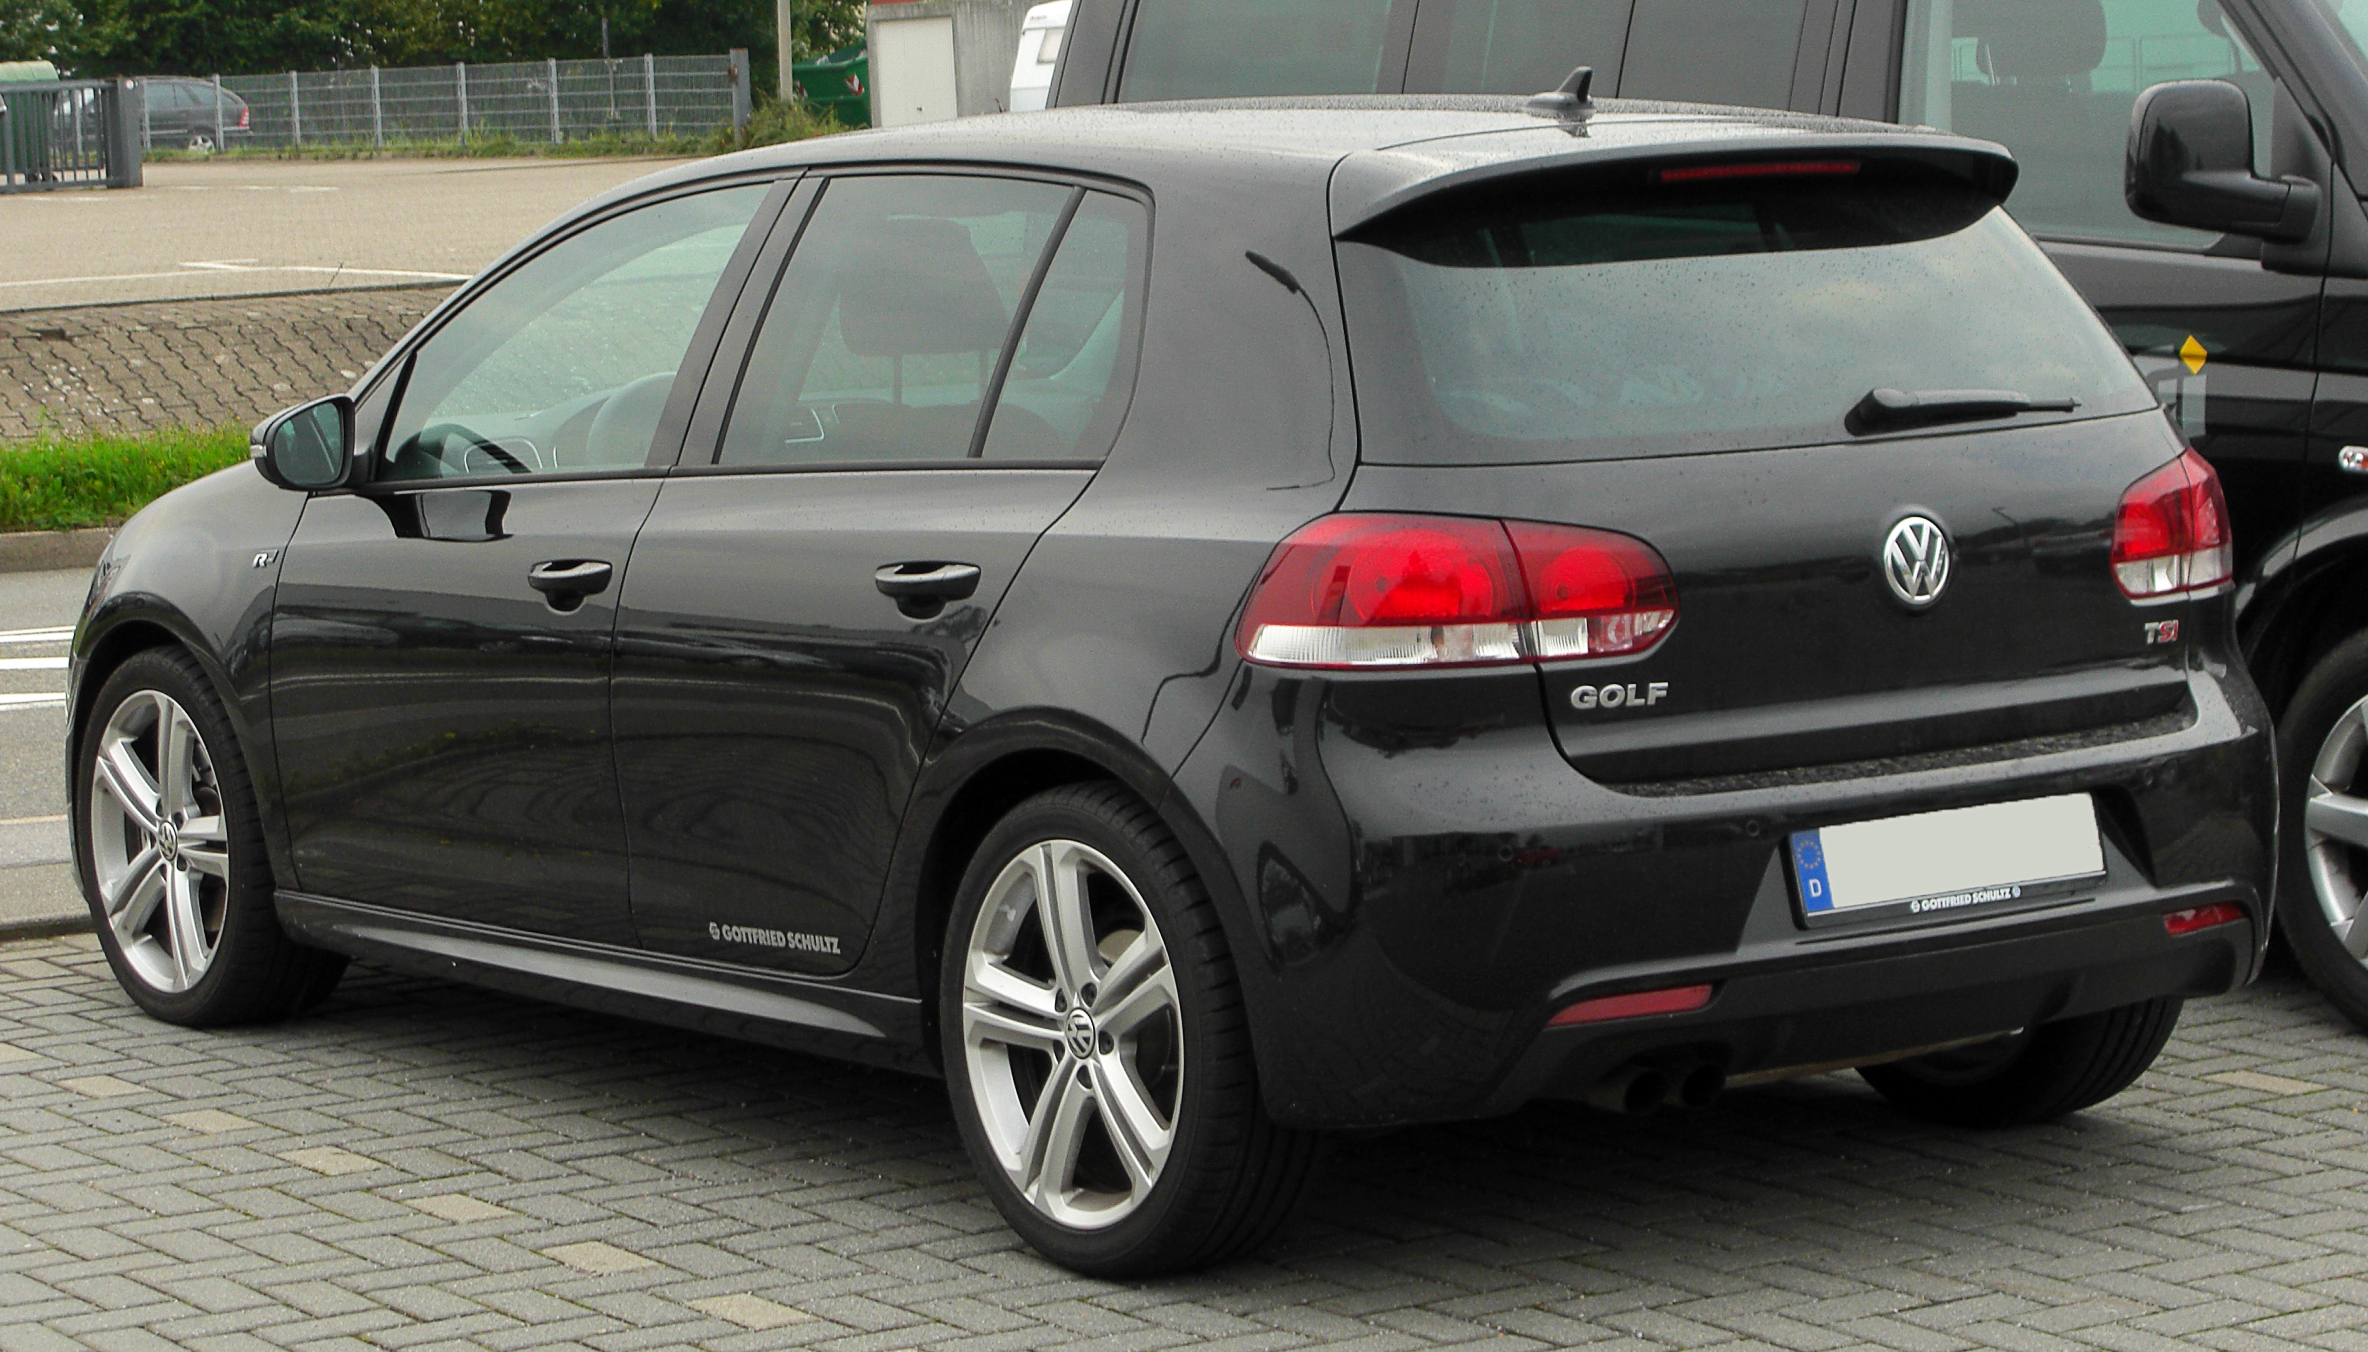 vw golf 1 4 tsi technical details history photos on. Black Bedroom Furniture Sets. Home Design Ideas